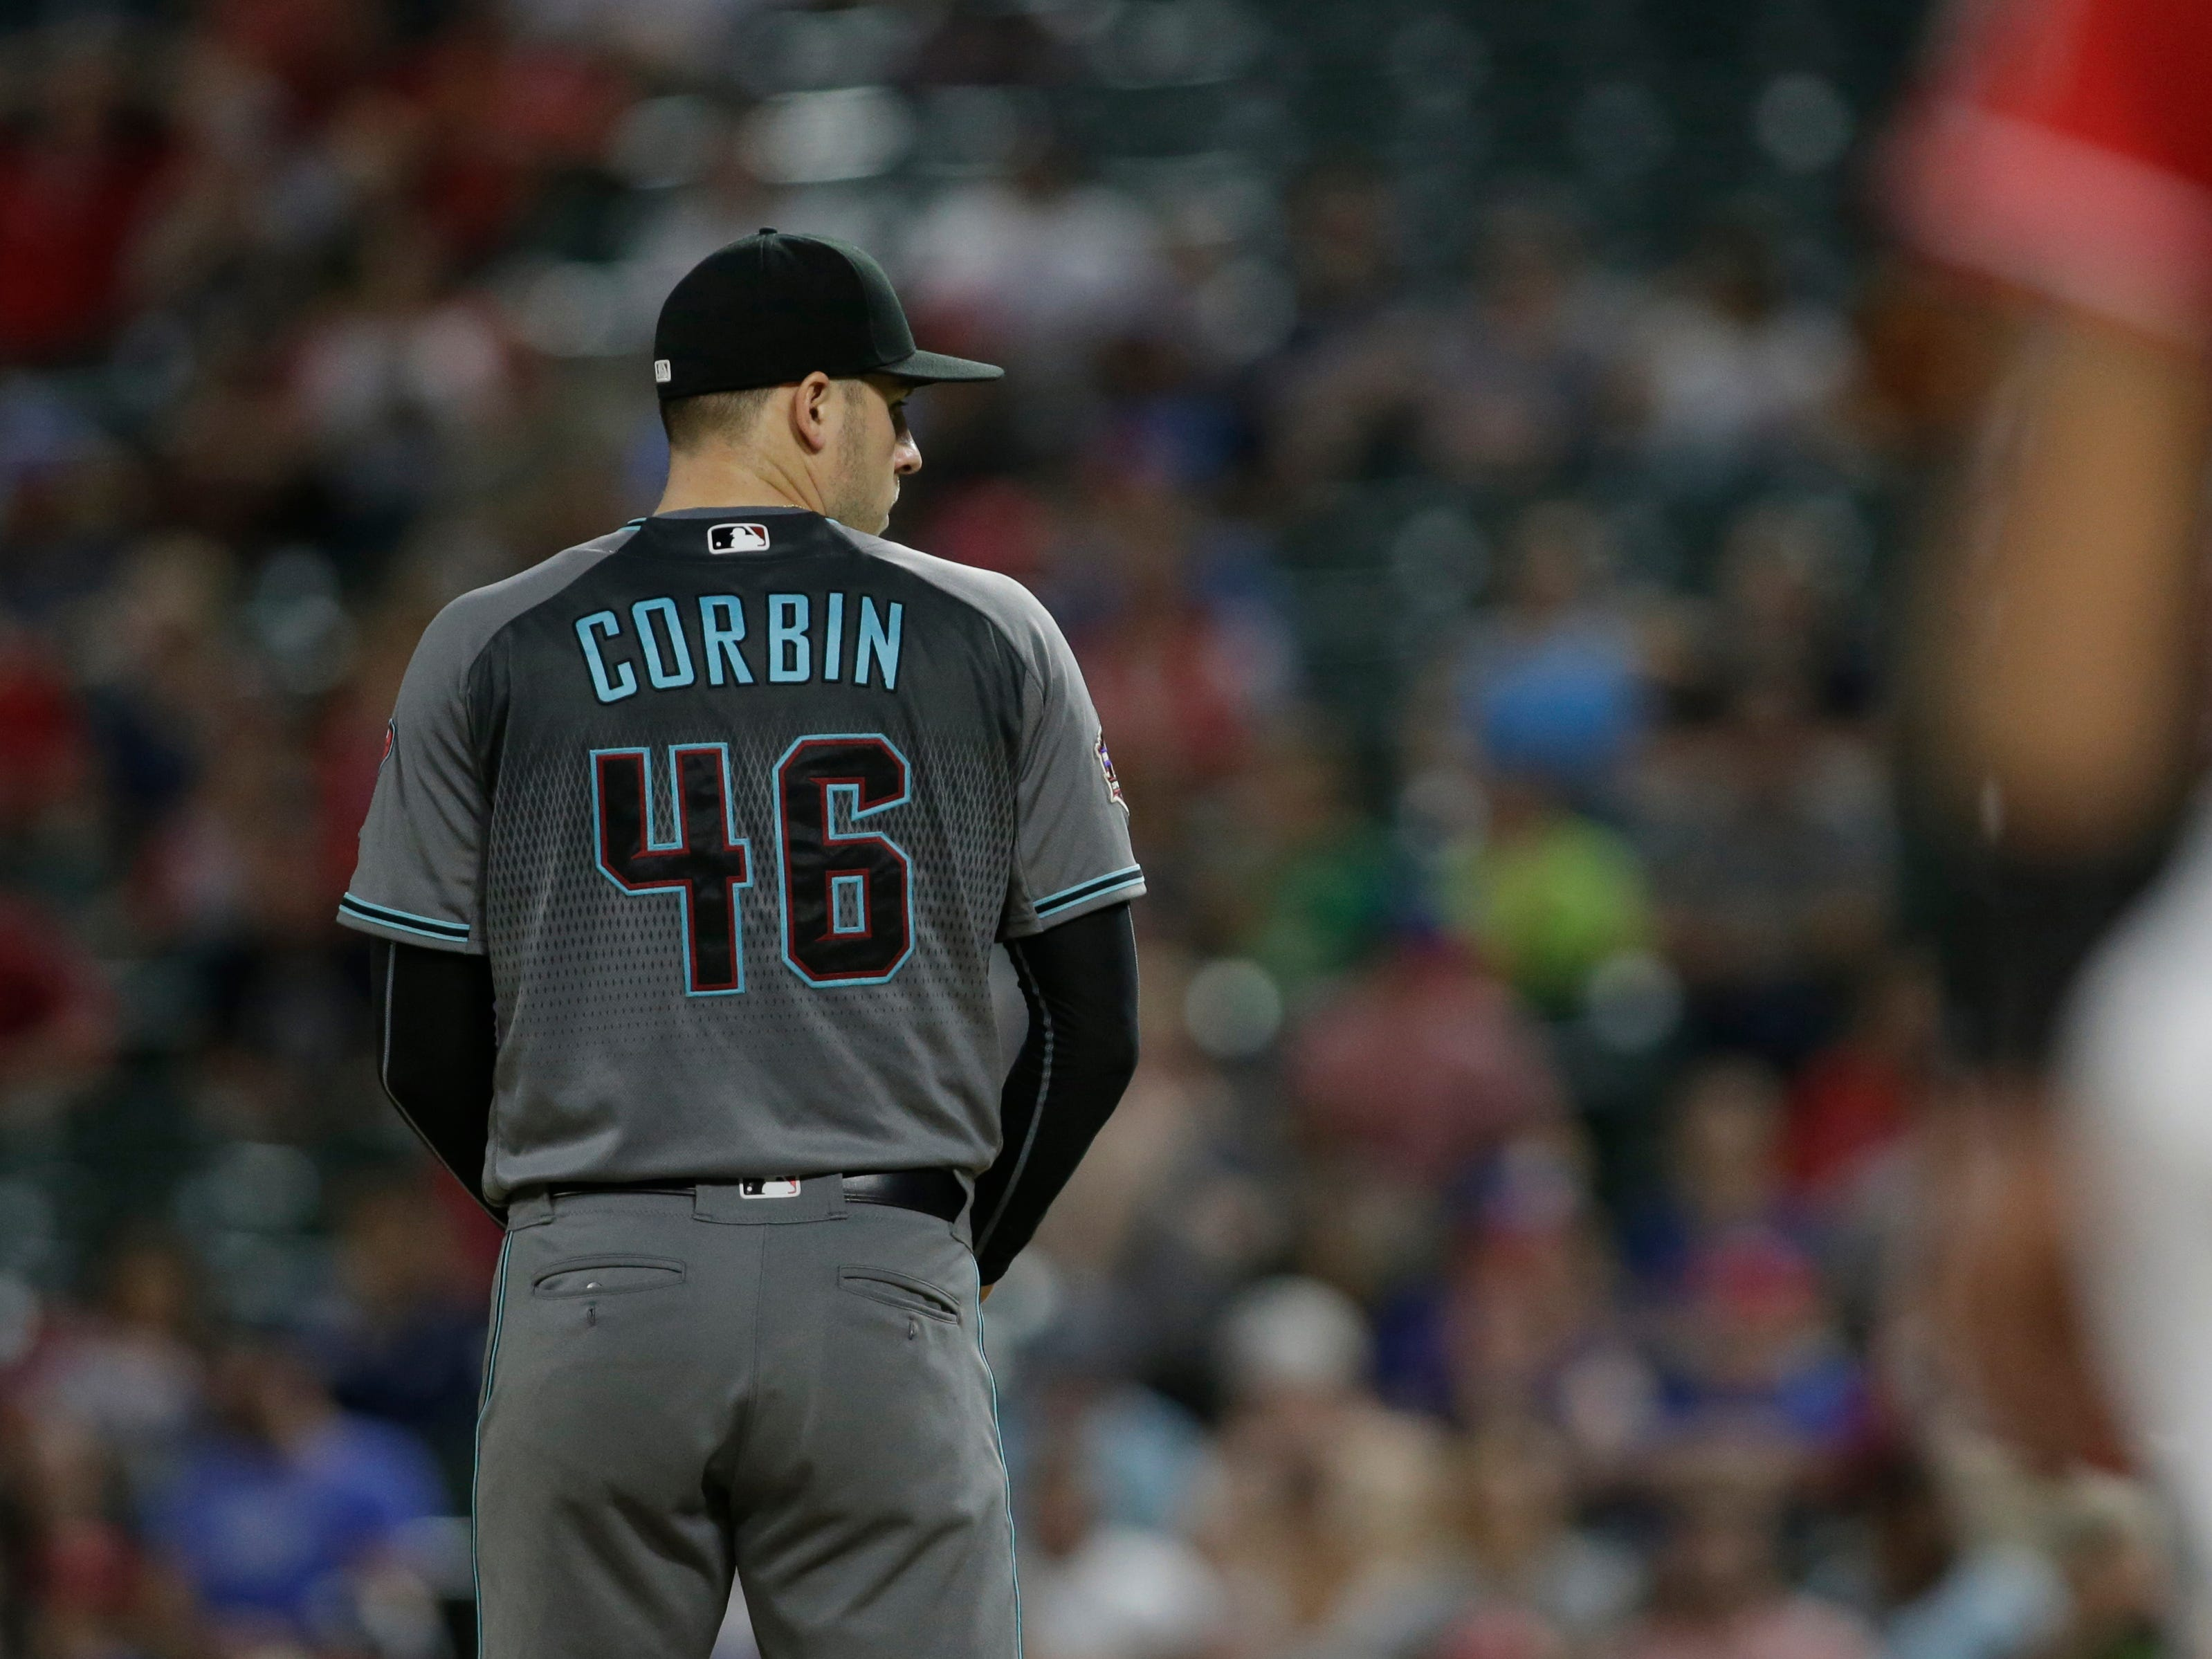 Aug 14, 2018: Arizona Diamondbacks starting pitcher Patrick Corbin (46) stands on the mound in the fourth inning against the Texas Rangers at Globe Life Park in Arlington.